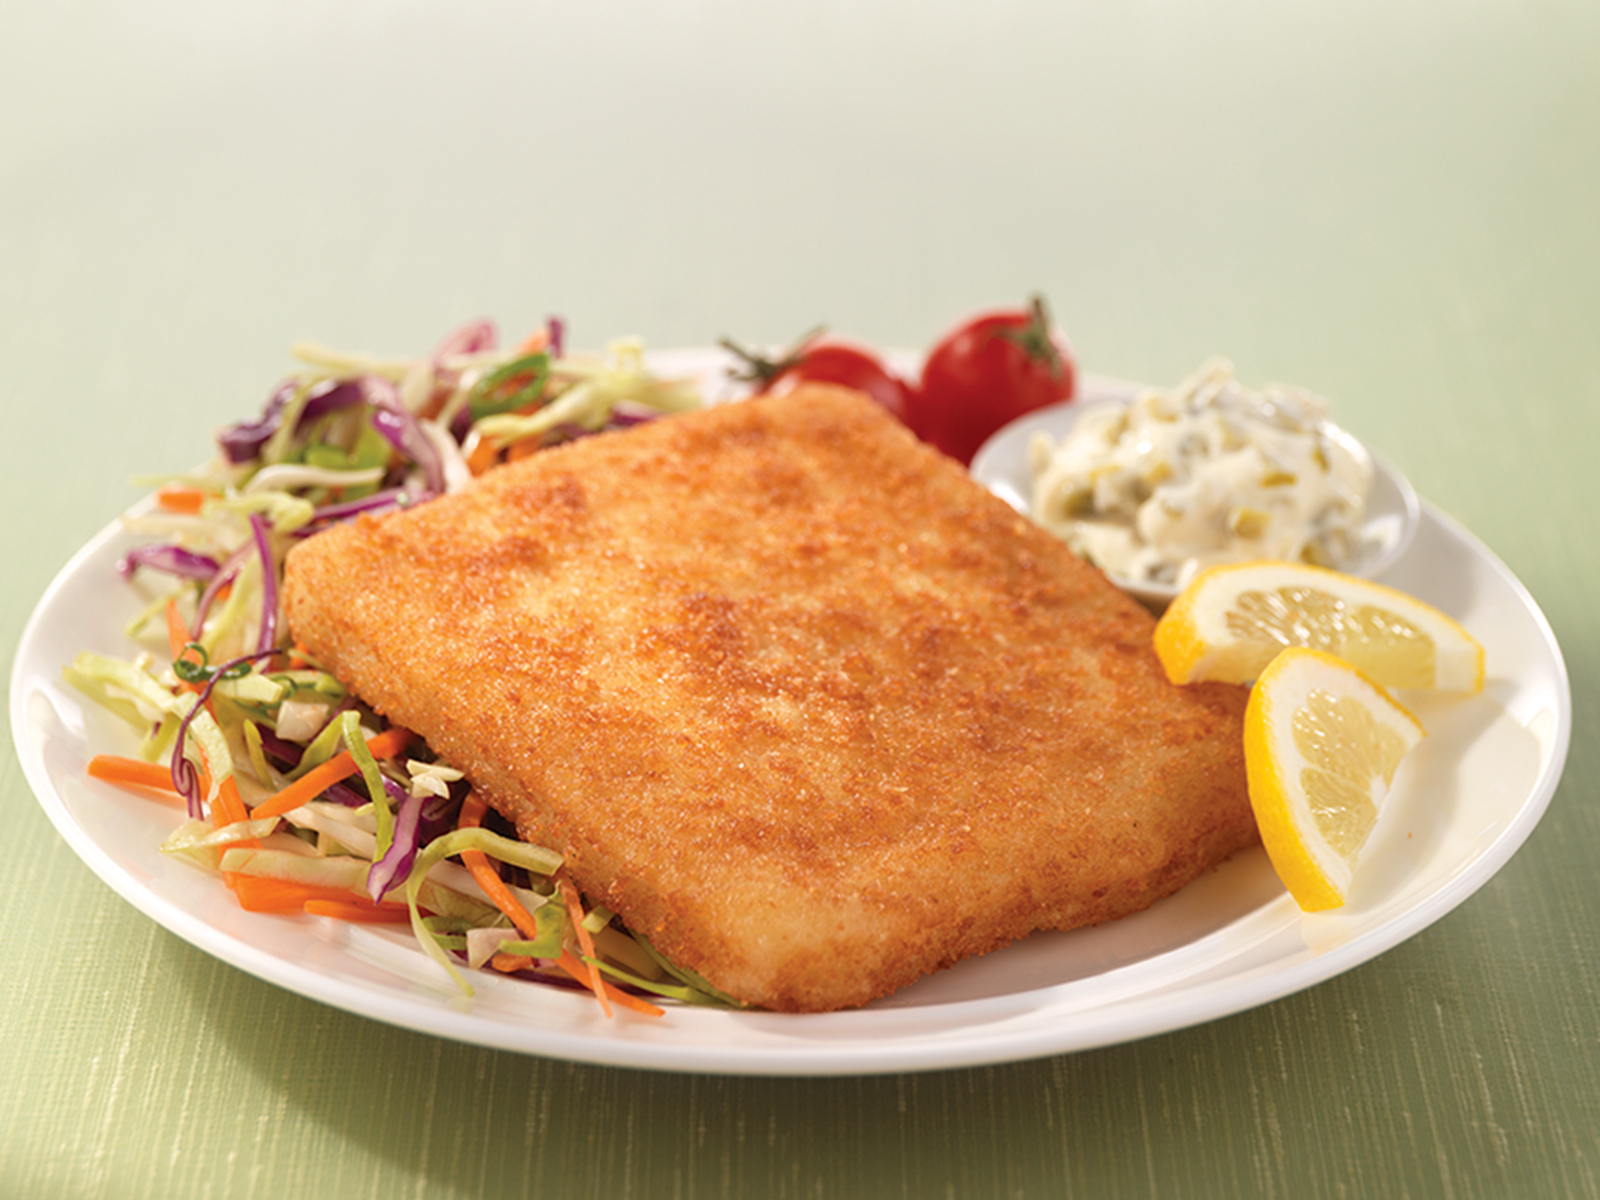 Seasoned Panko Breaded Wild Alaska Pollock Sandwich Portion 4 oz Oven Ready 417438